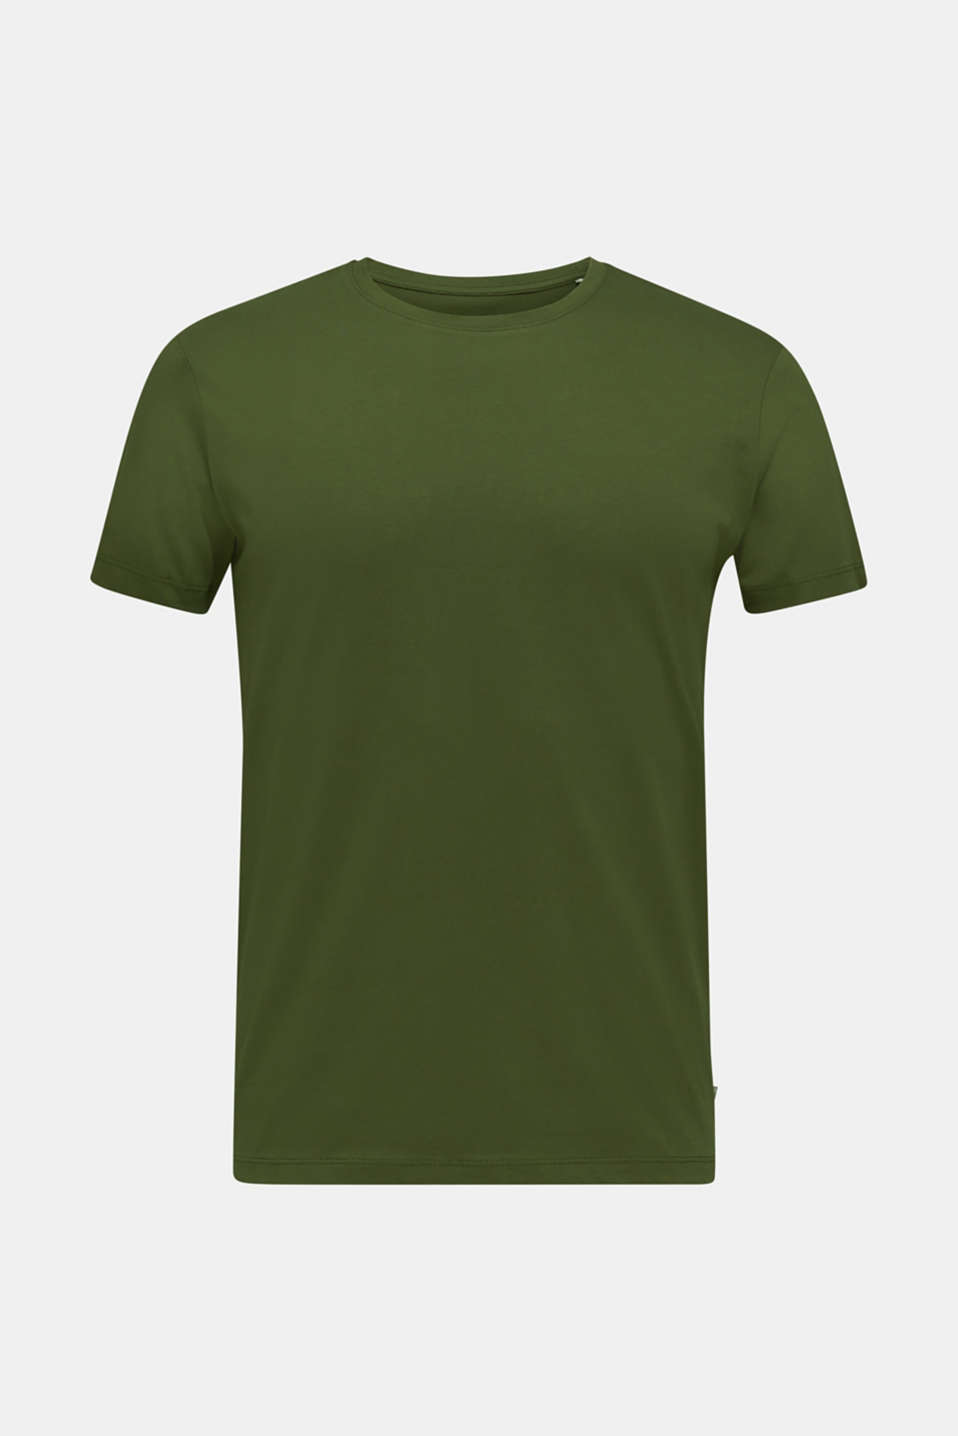 Jersey T-shirt in 100% cotton, KHAKI GREEN, detail image number 6